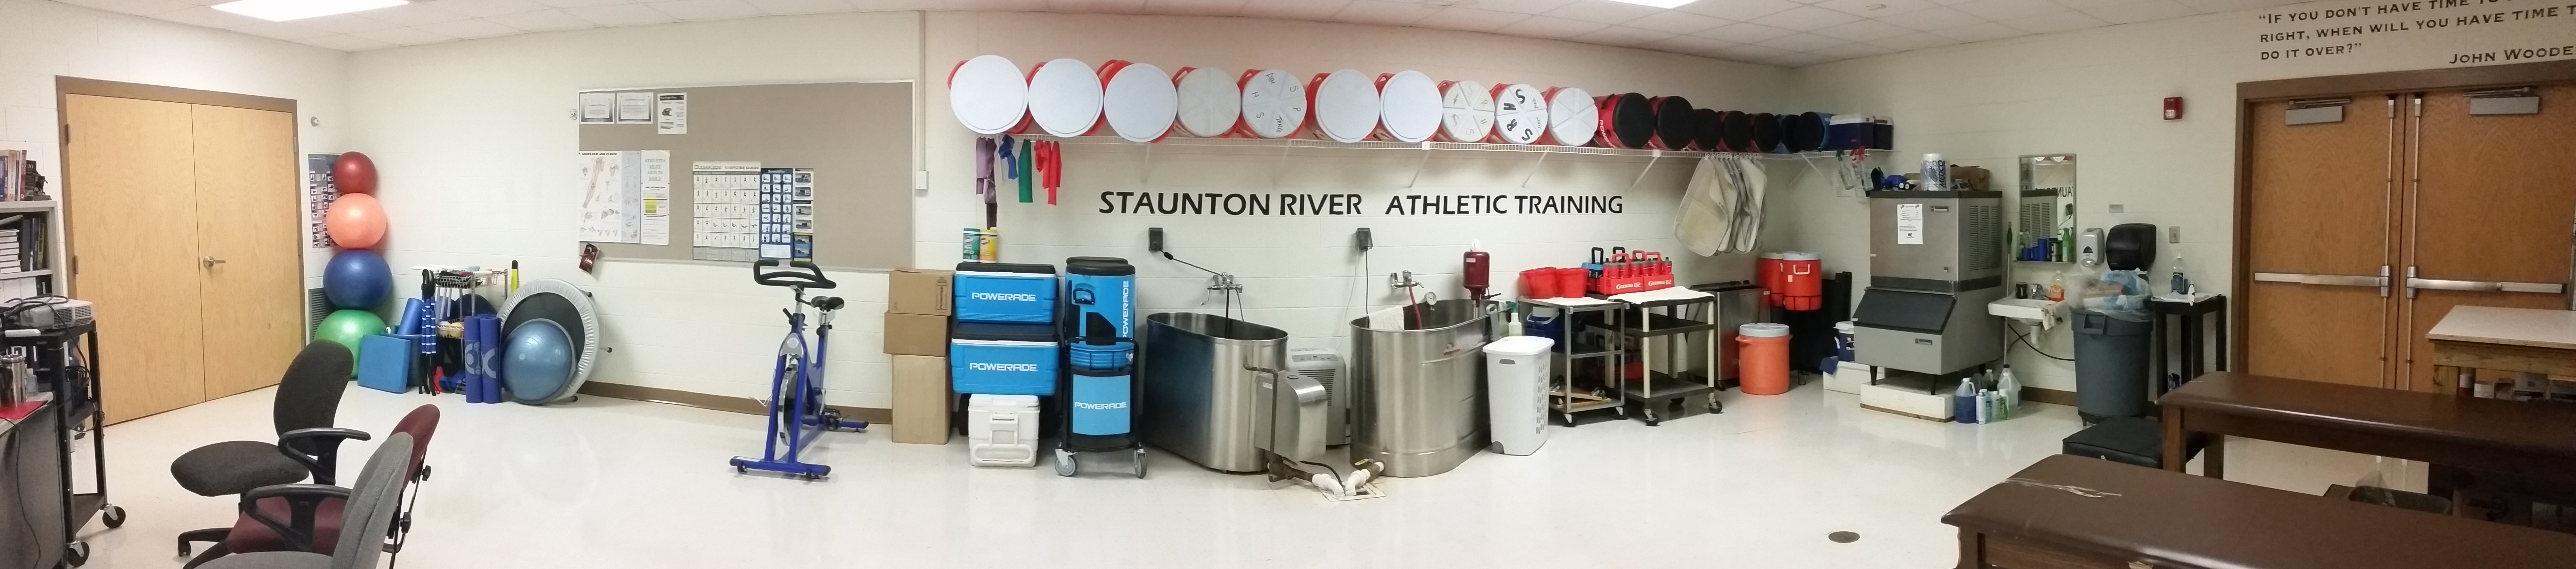 SRHS Athletic Training Room